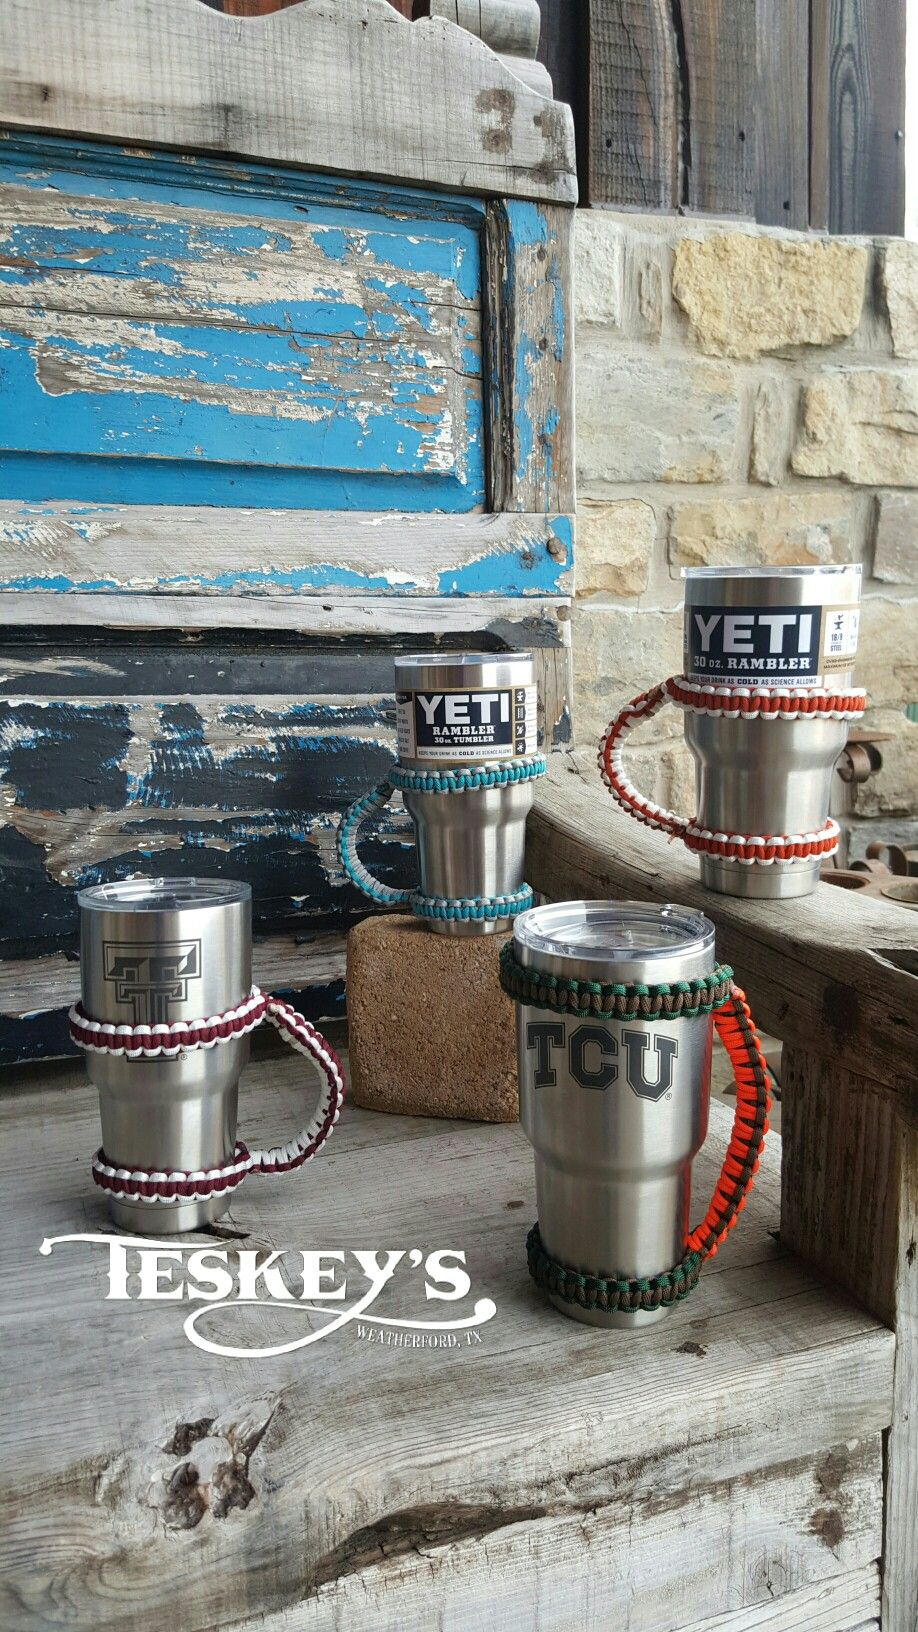 Handmade, quality yeti cup handles! These have been a